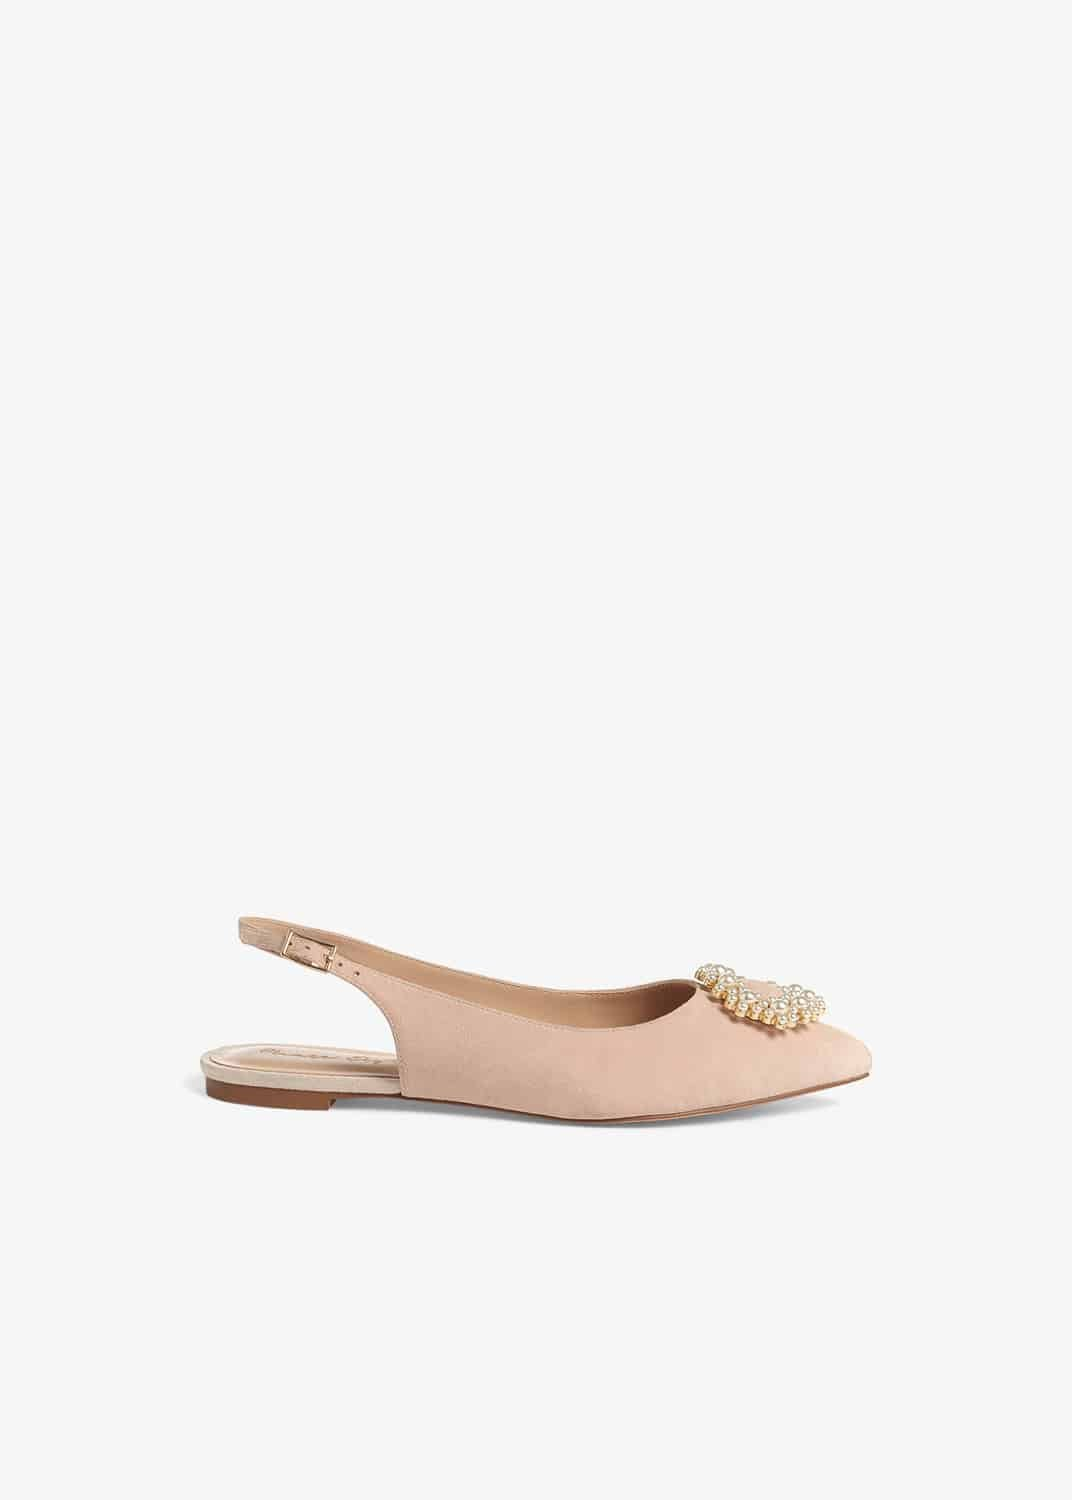 Phase Eight Women Abi Faux Pearl Trim Leather Slingback Flat Shoes